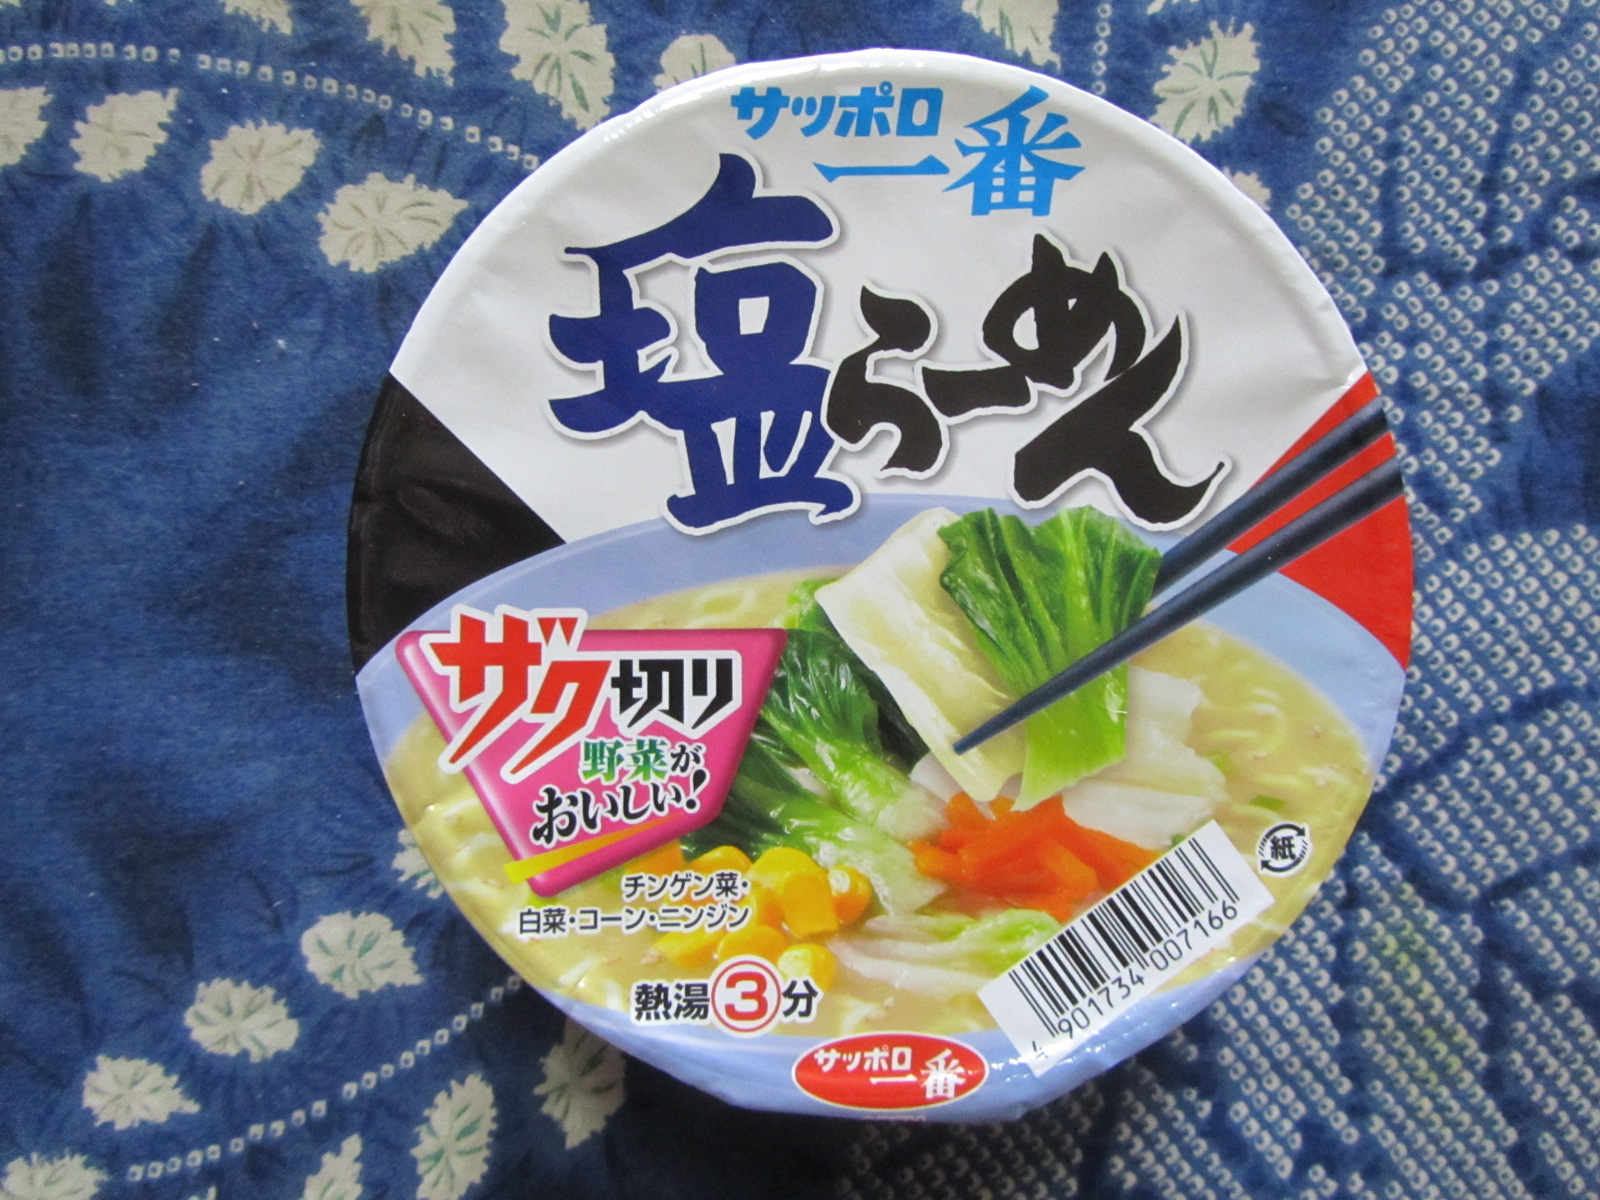 15 things you should have with your cup noodles next time tsunagu  #AE2E1D